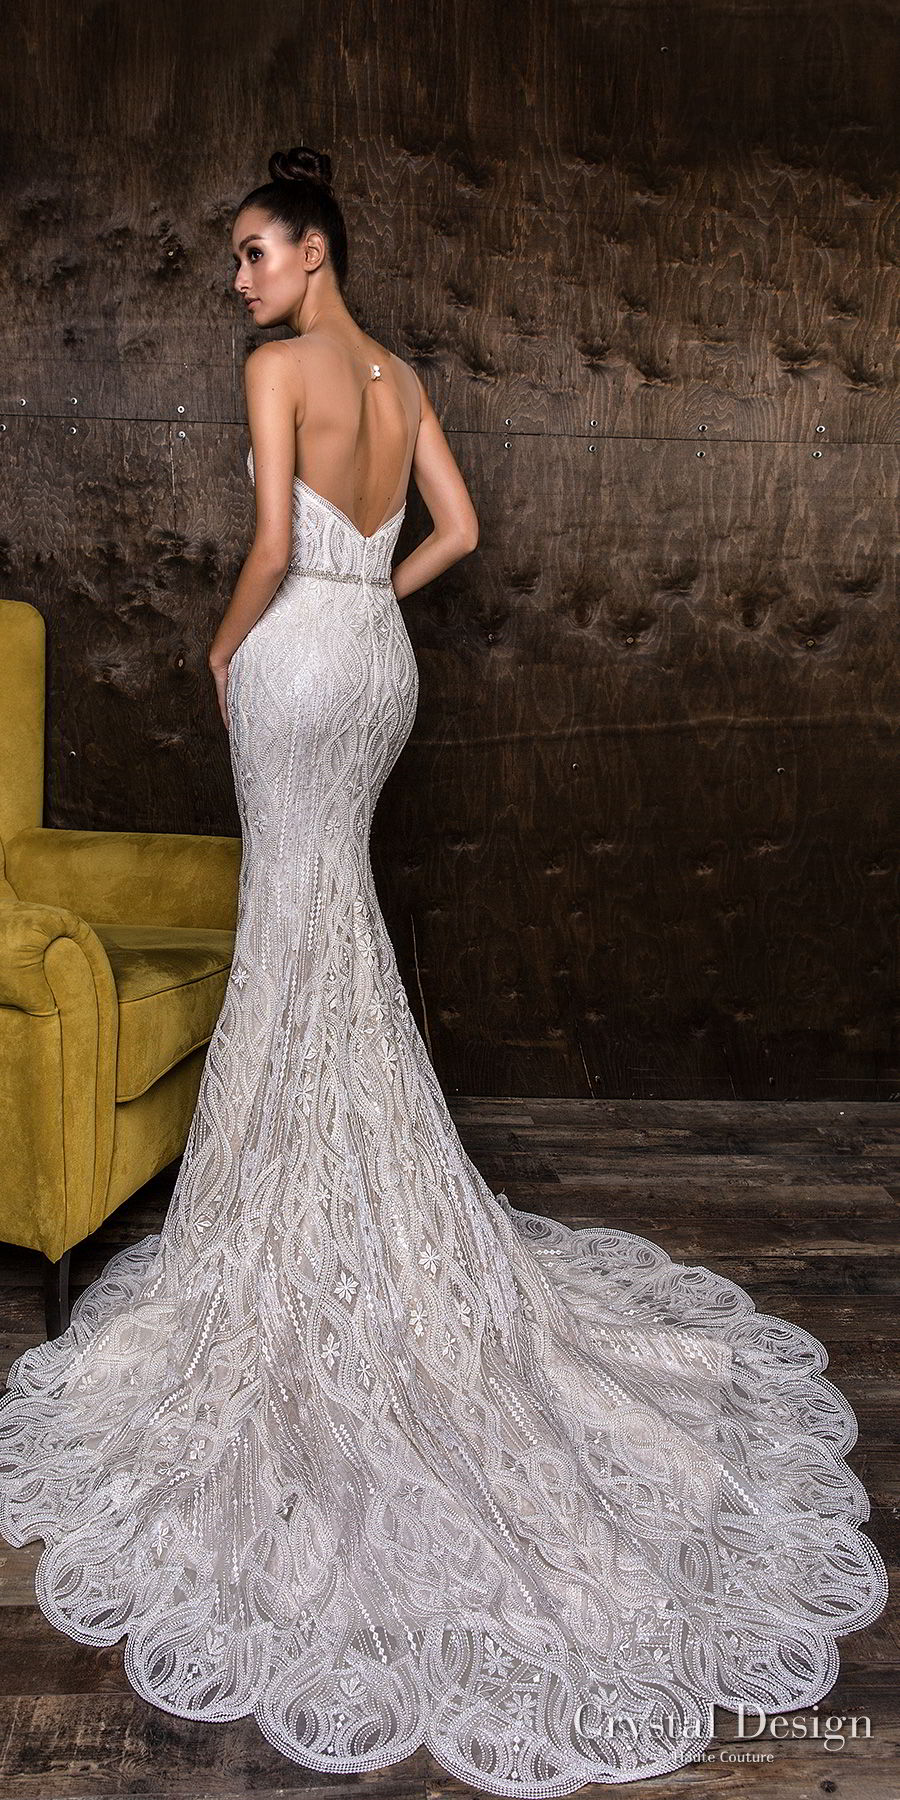 crystal design 2018 strapless sweetheart neckline full embellishment elegant glamor fit and flare sheath wedding dress open back chapel train (djef) bv